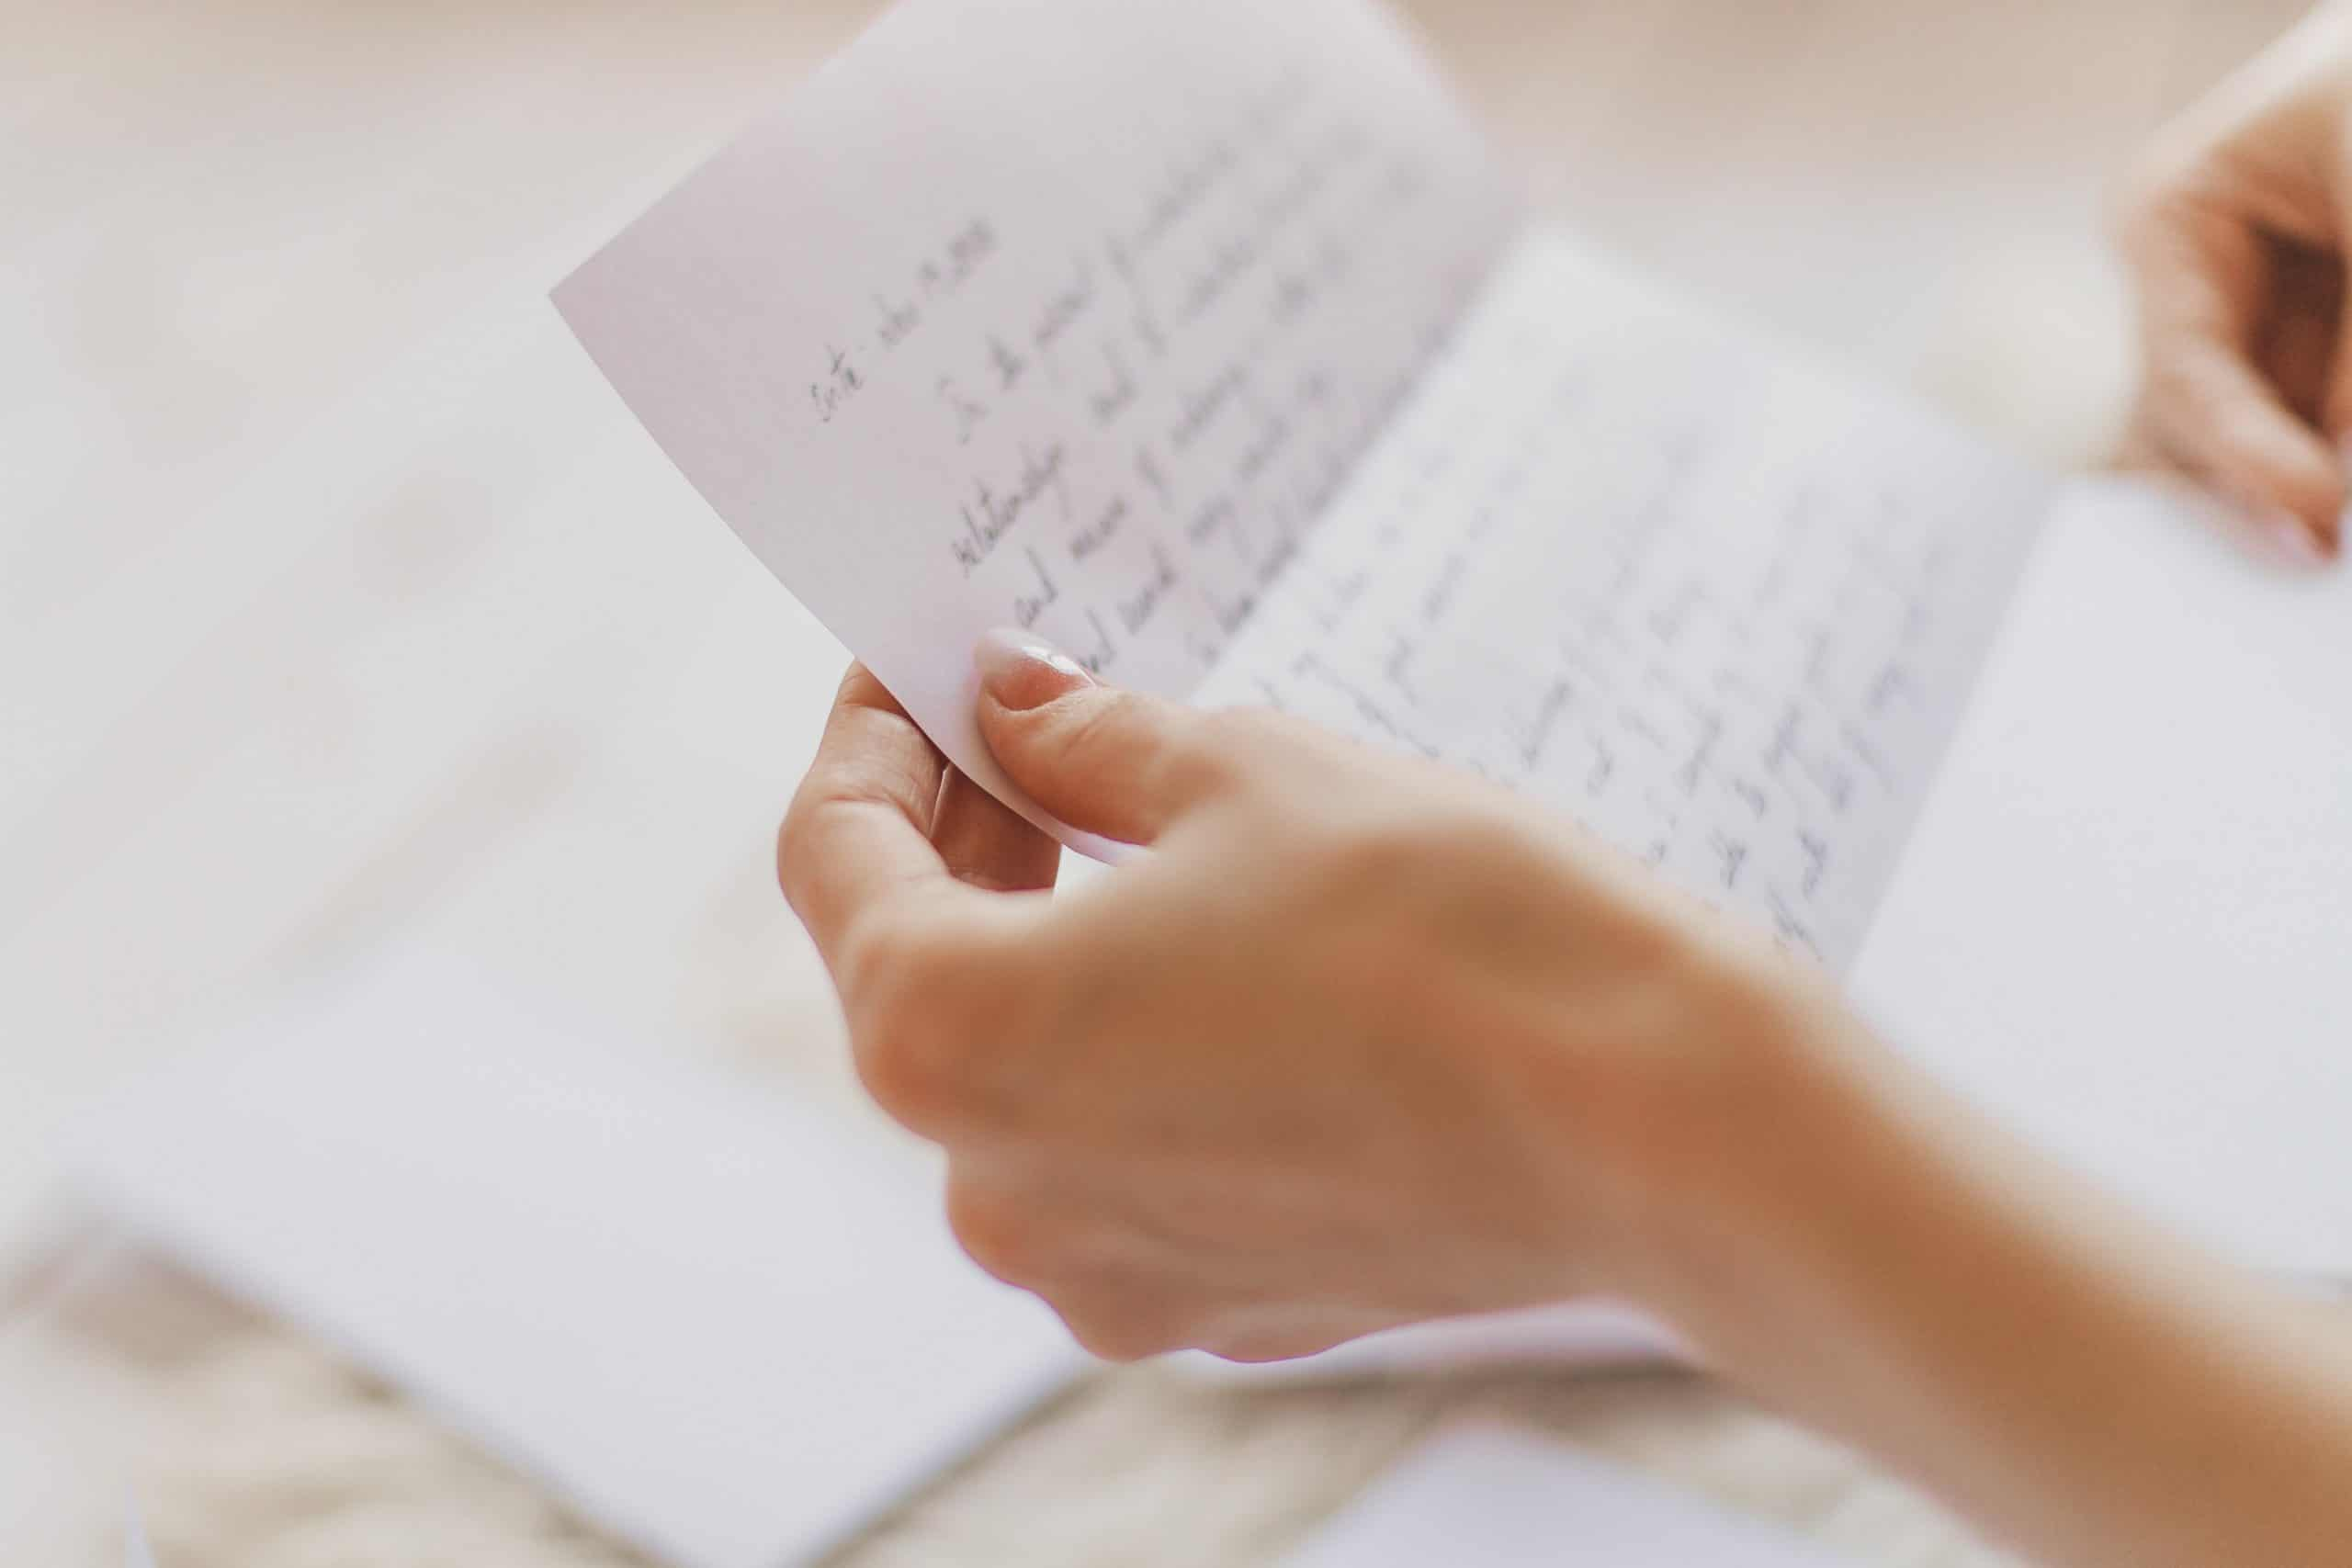 how to write a letter love